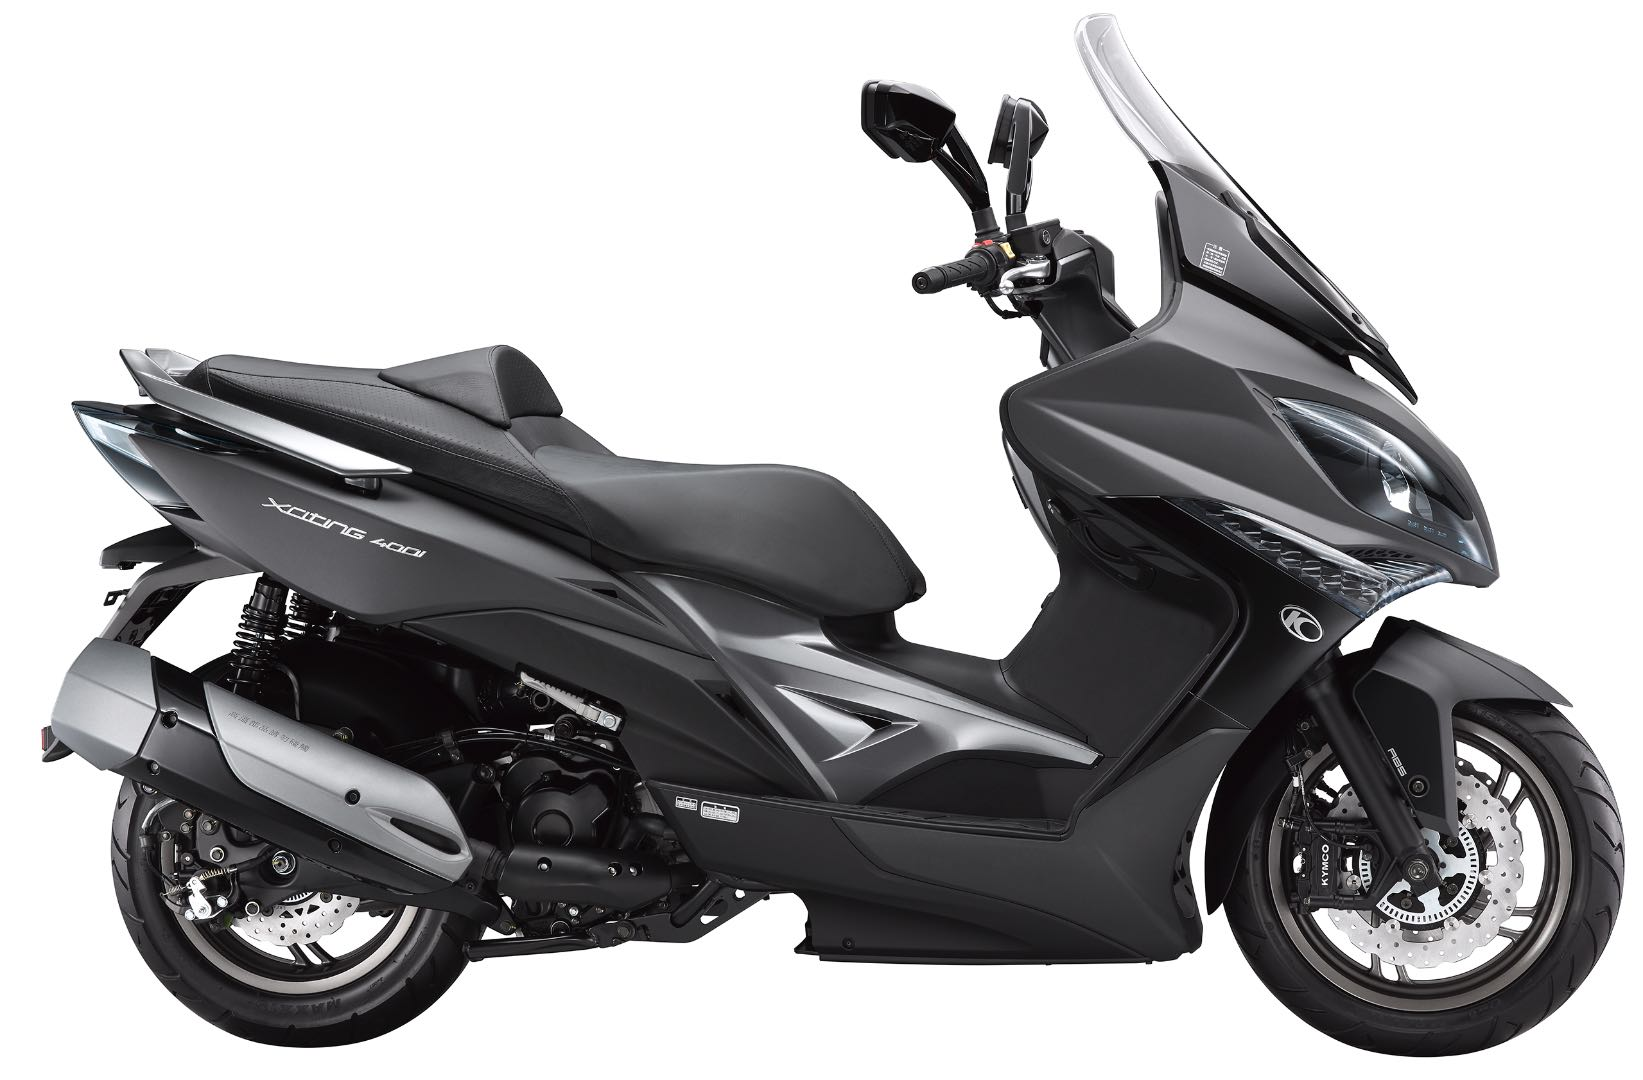 2018 Kymco Xciting 400i Abs Scooter Review 15 Fast Facts